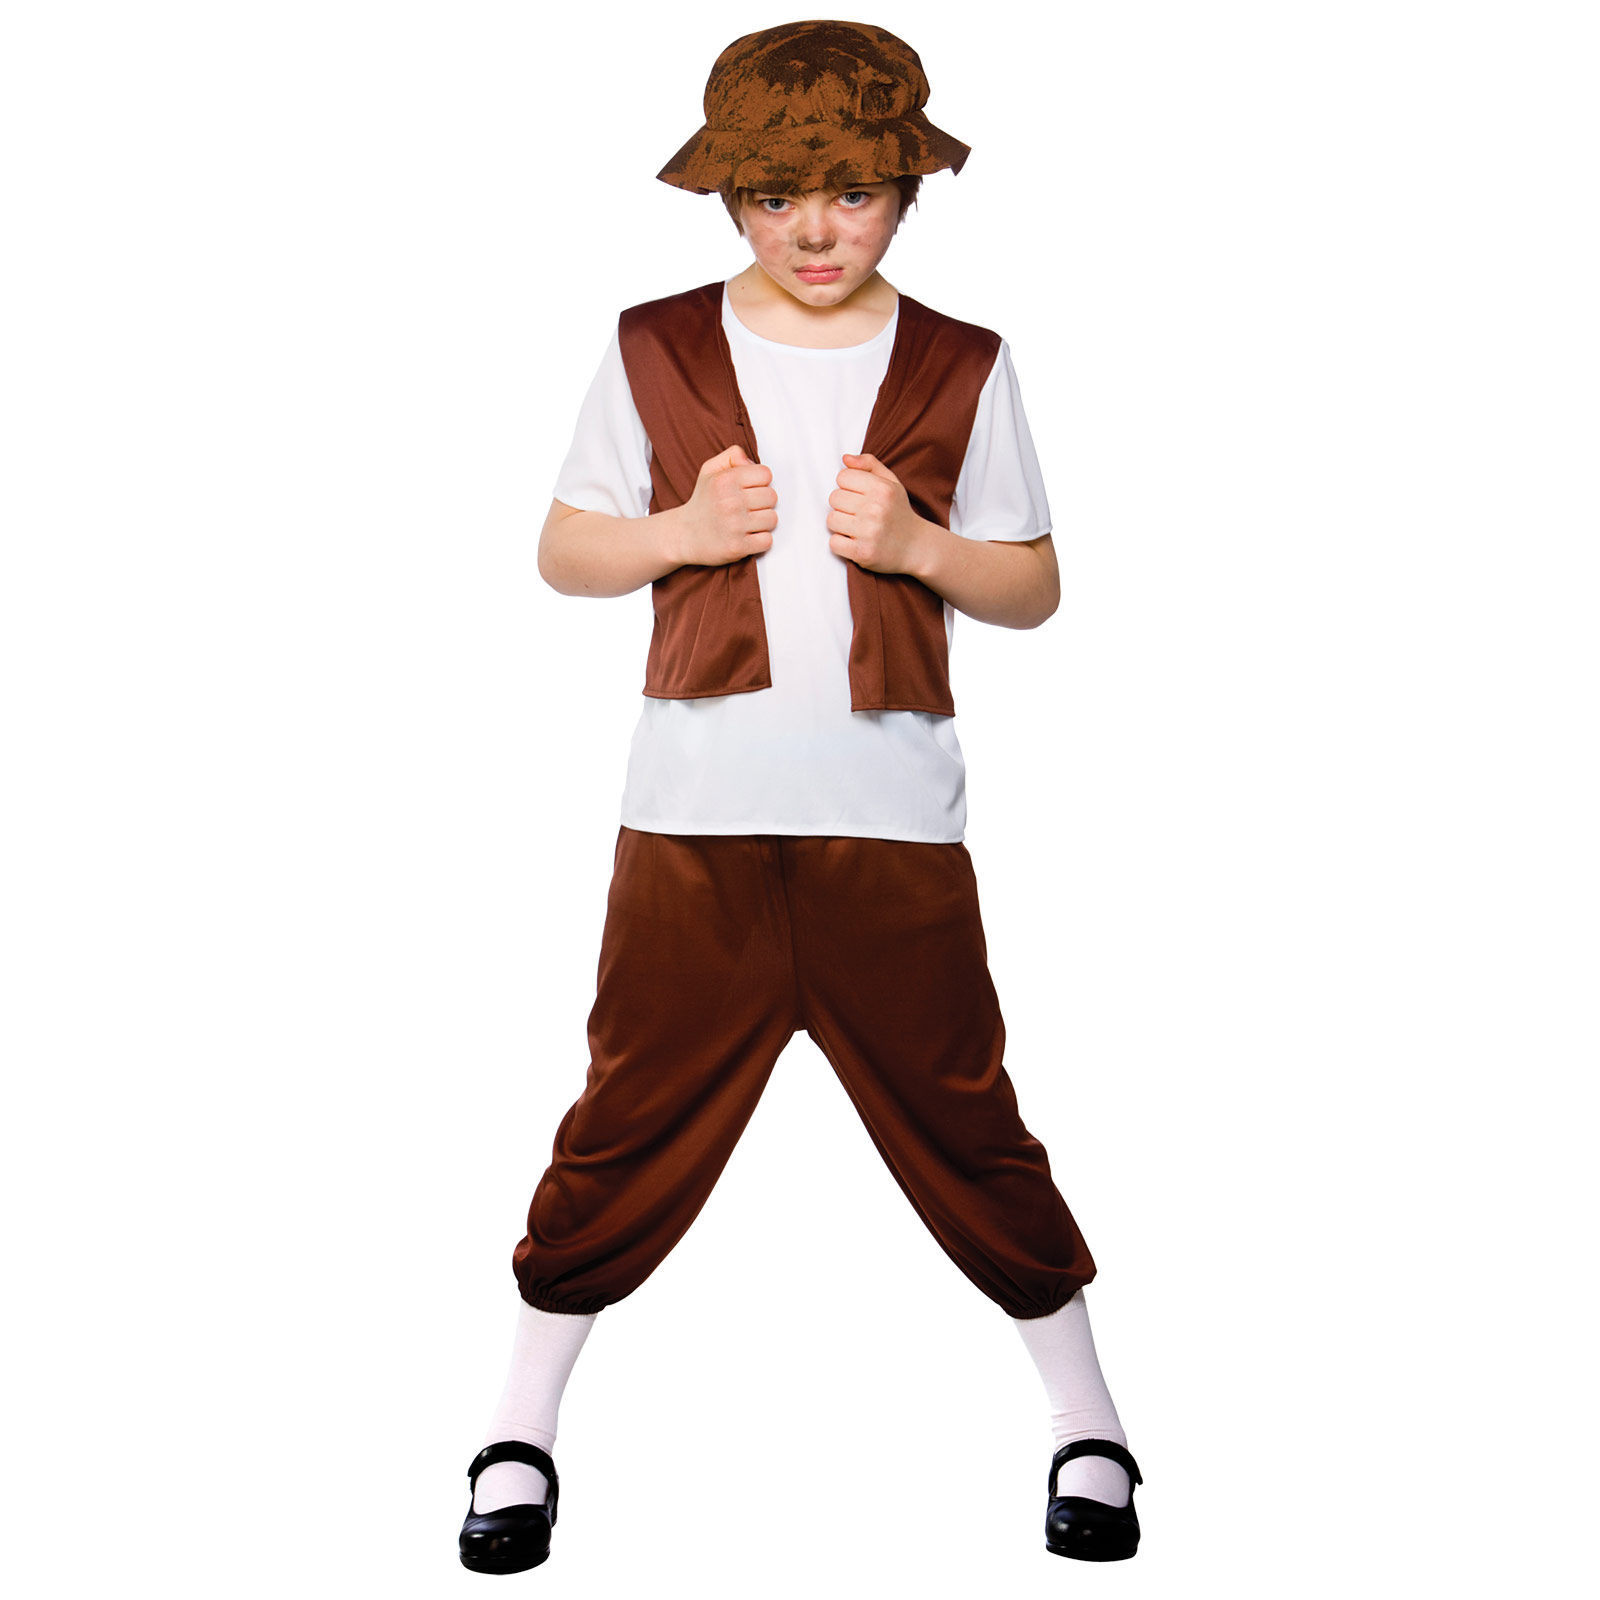 Boys Tudor Boy Costume Poor Street Child Play Party Halloween Fancy Dress Up New Ebay